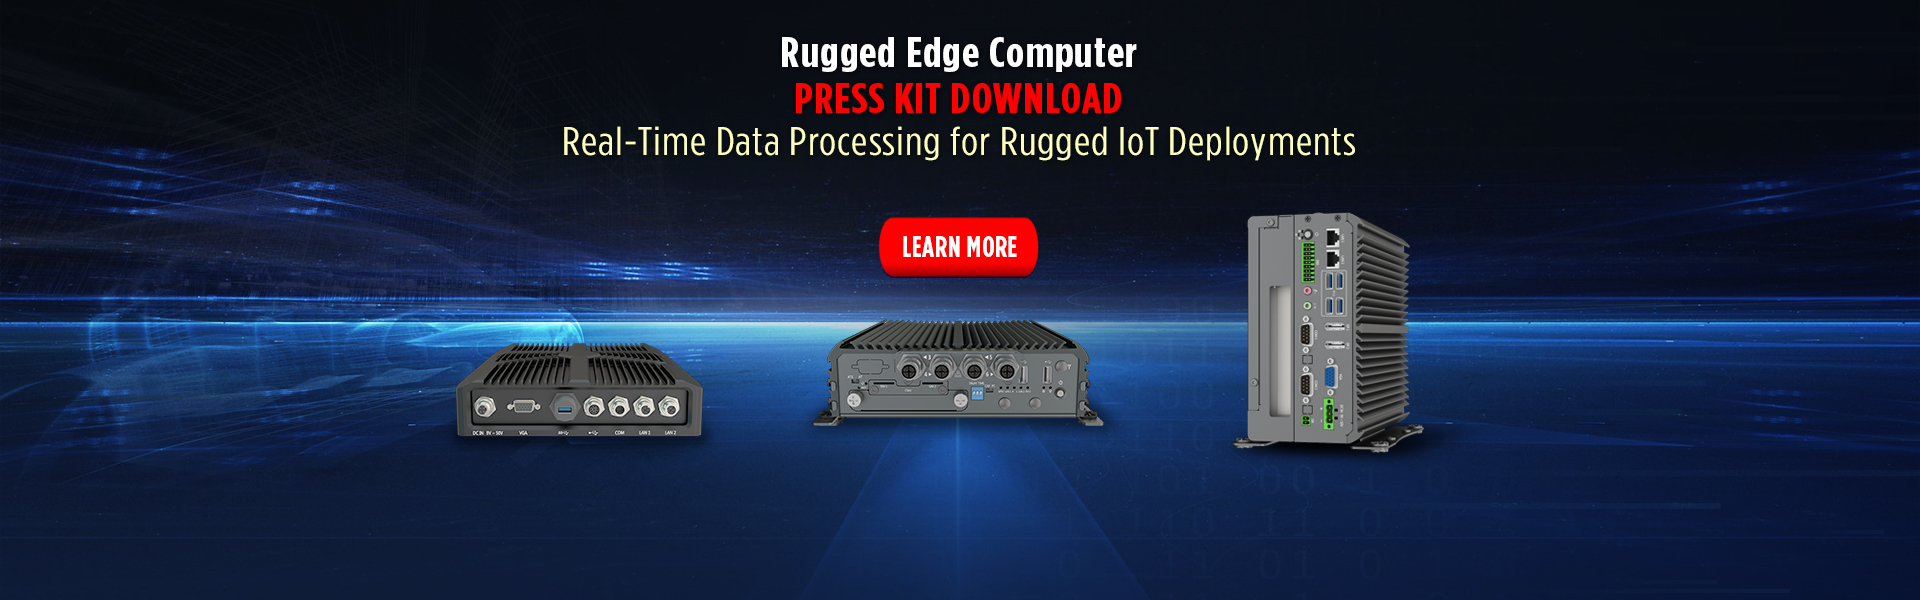 Rugged Edge Computer Press Kit Download